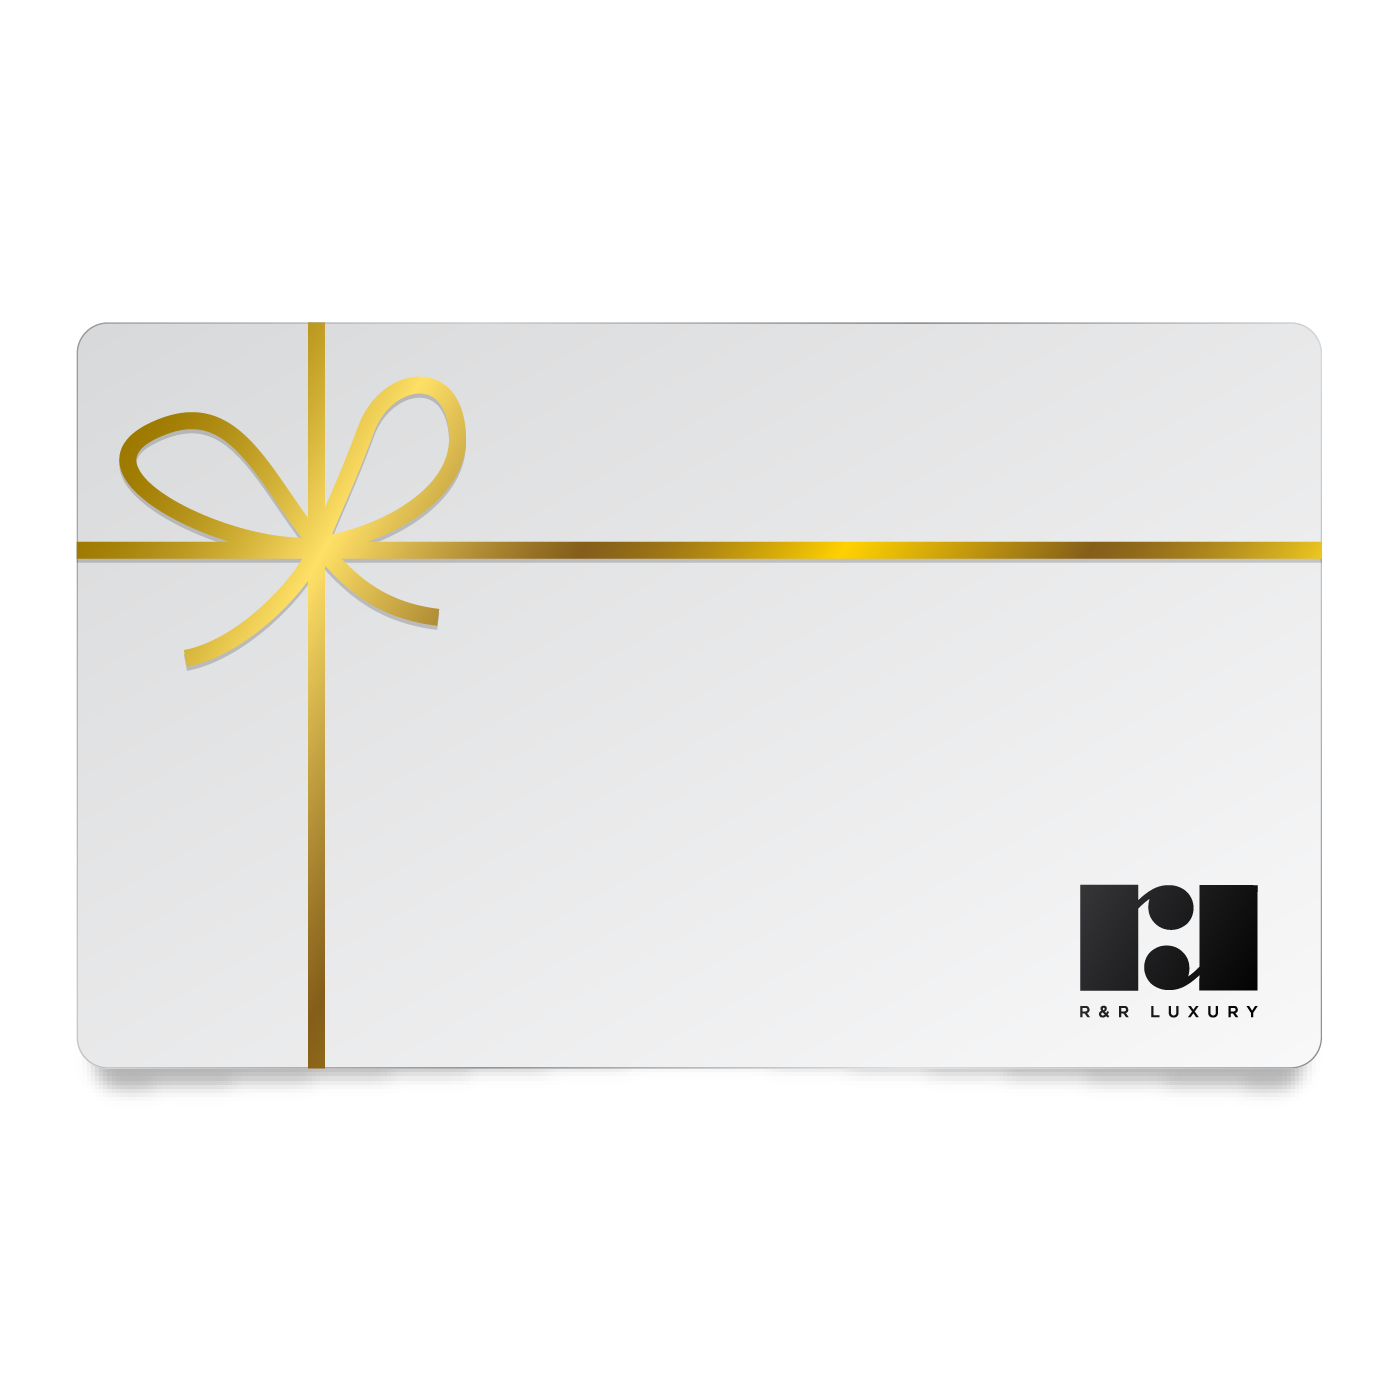 R&R Luxury Gift Card